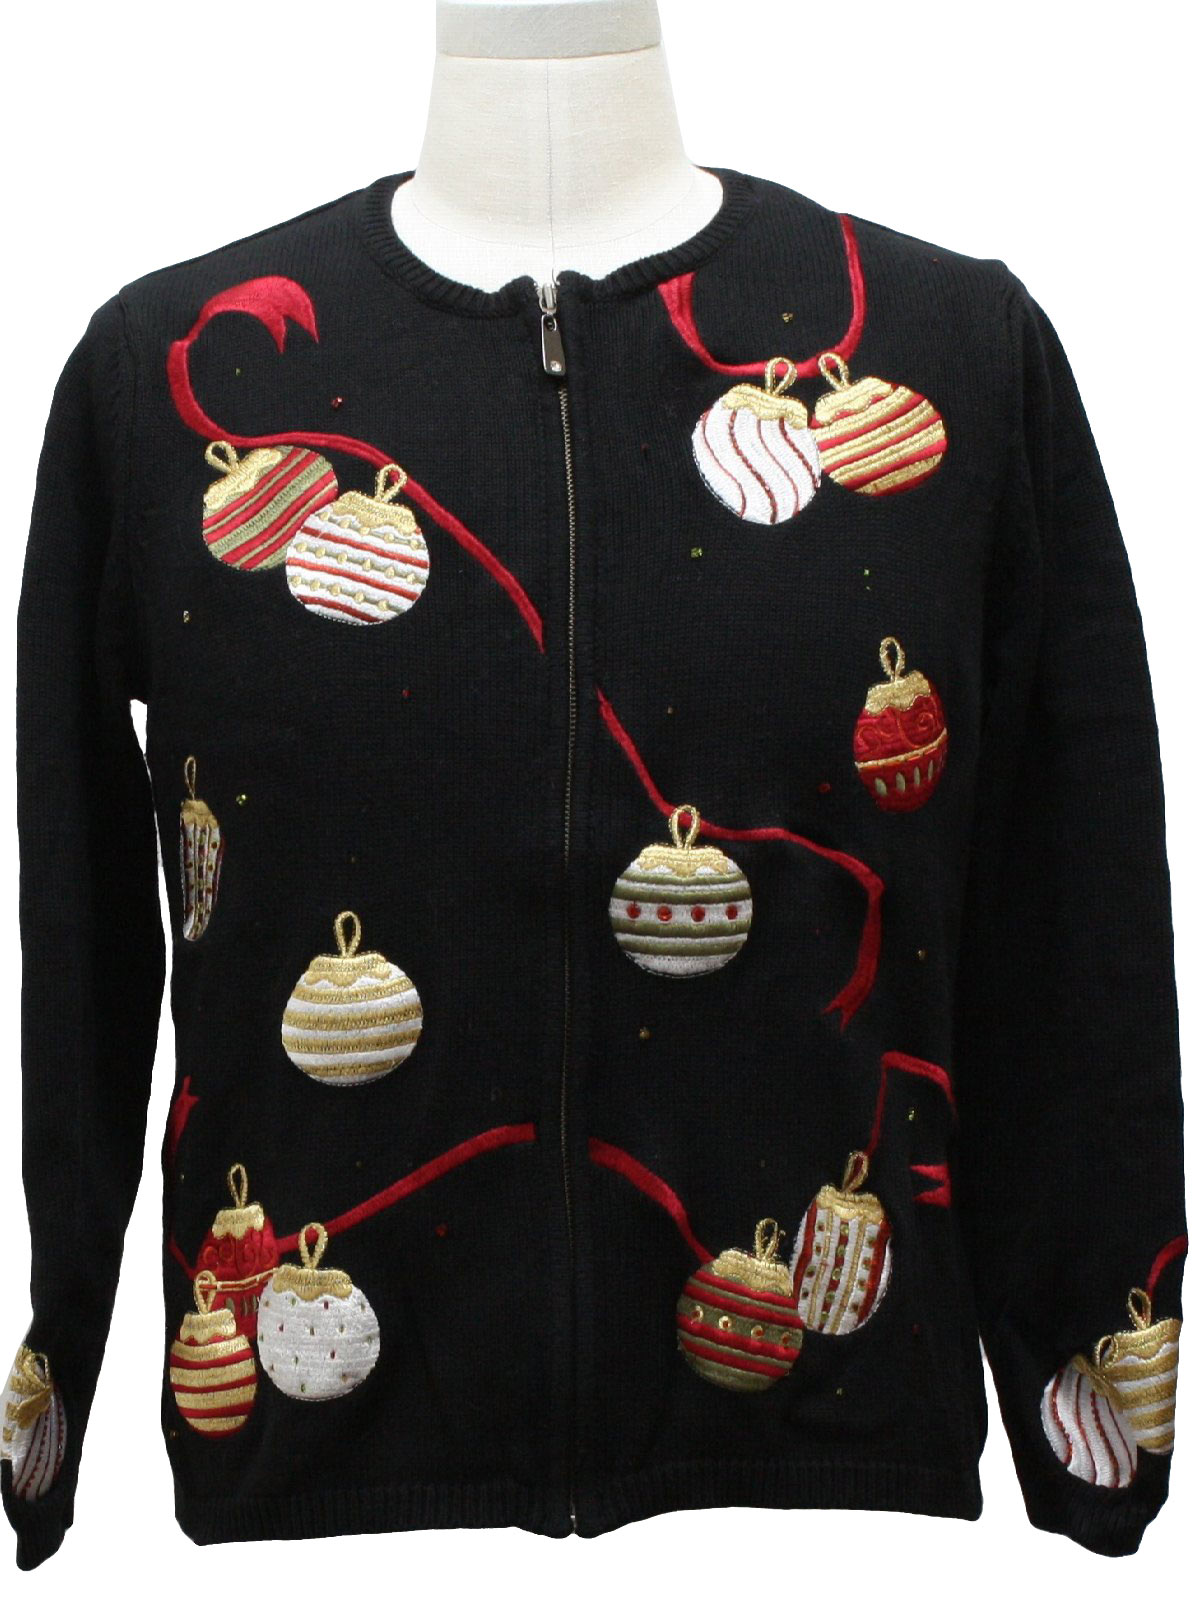 womens ugly christmas sweater nordstrom womens black background ramie cotton blend zip front longsleeve ugly christmas sweater round neckline with - Nordstrom Christmas Sweaters